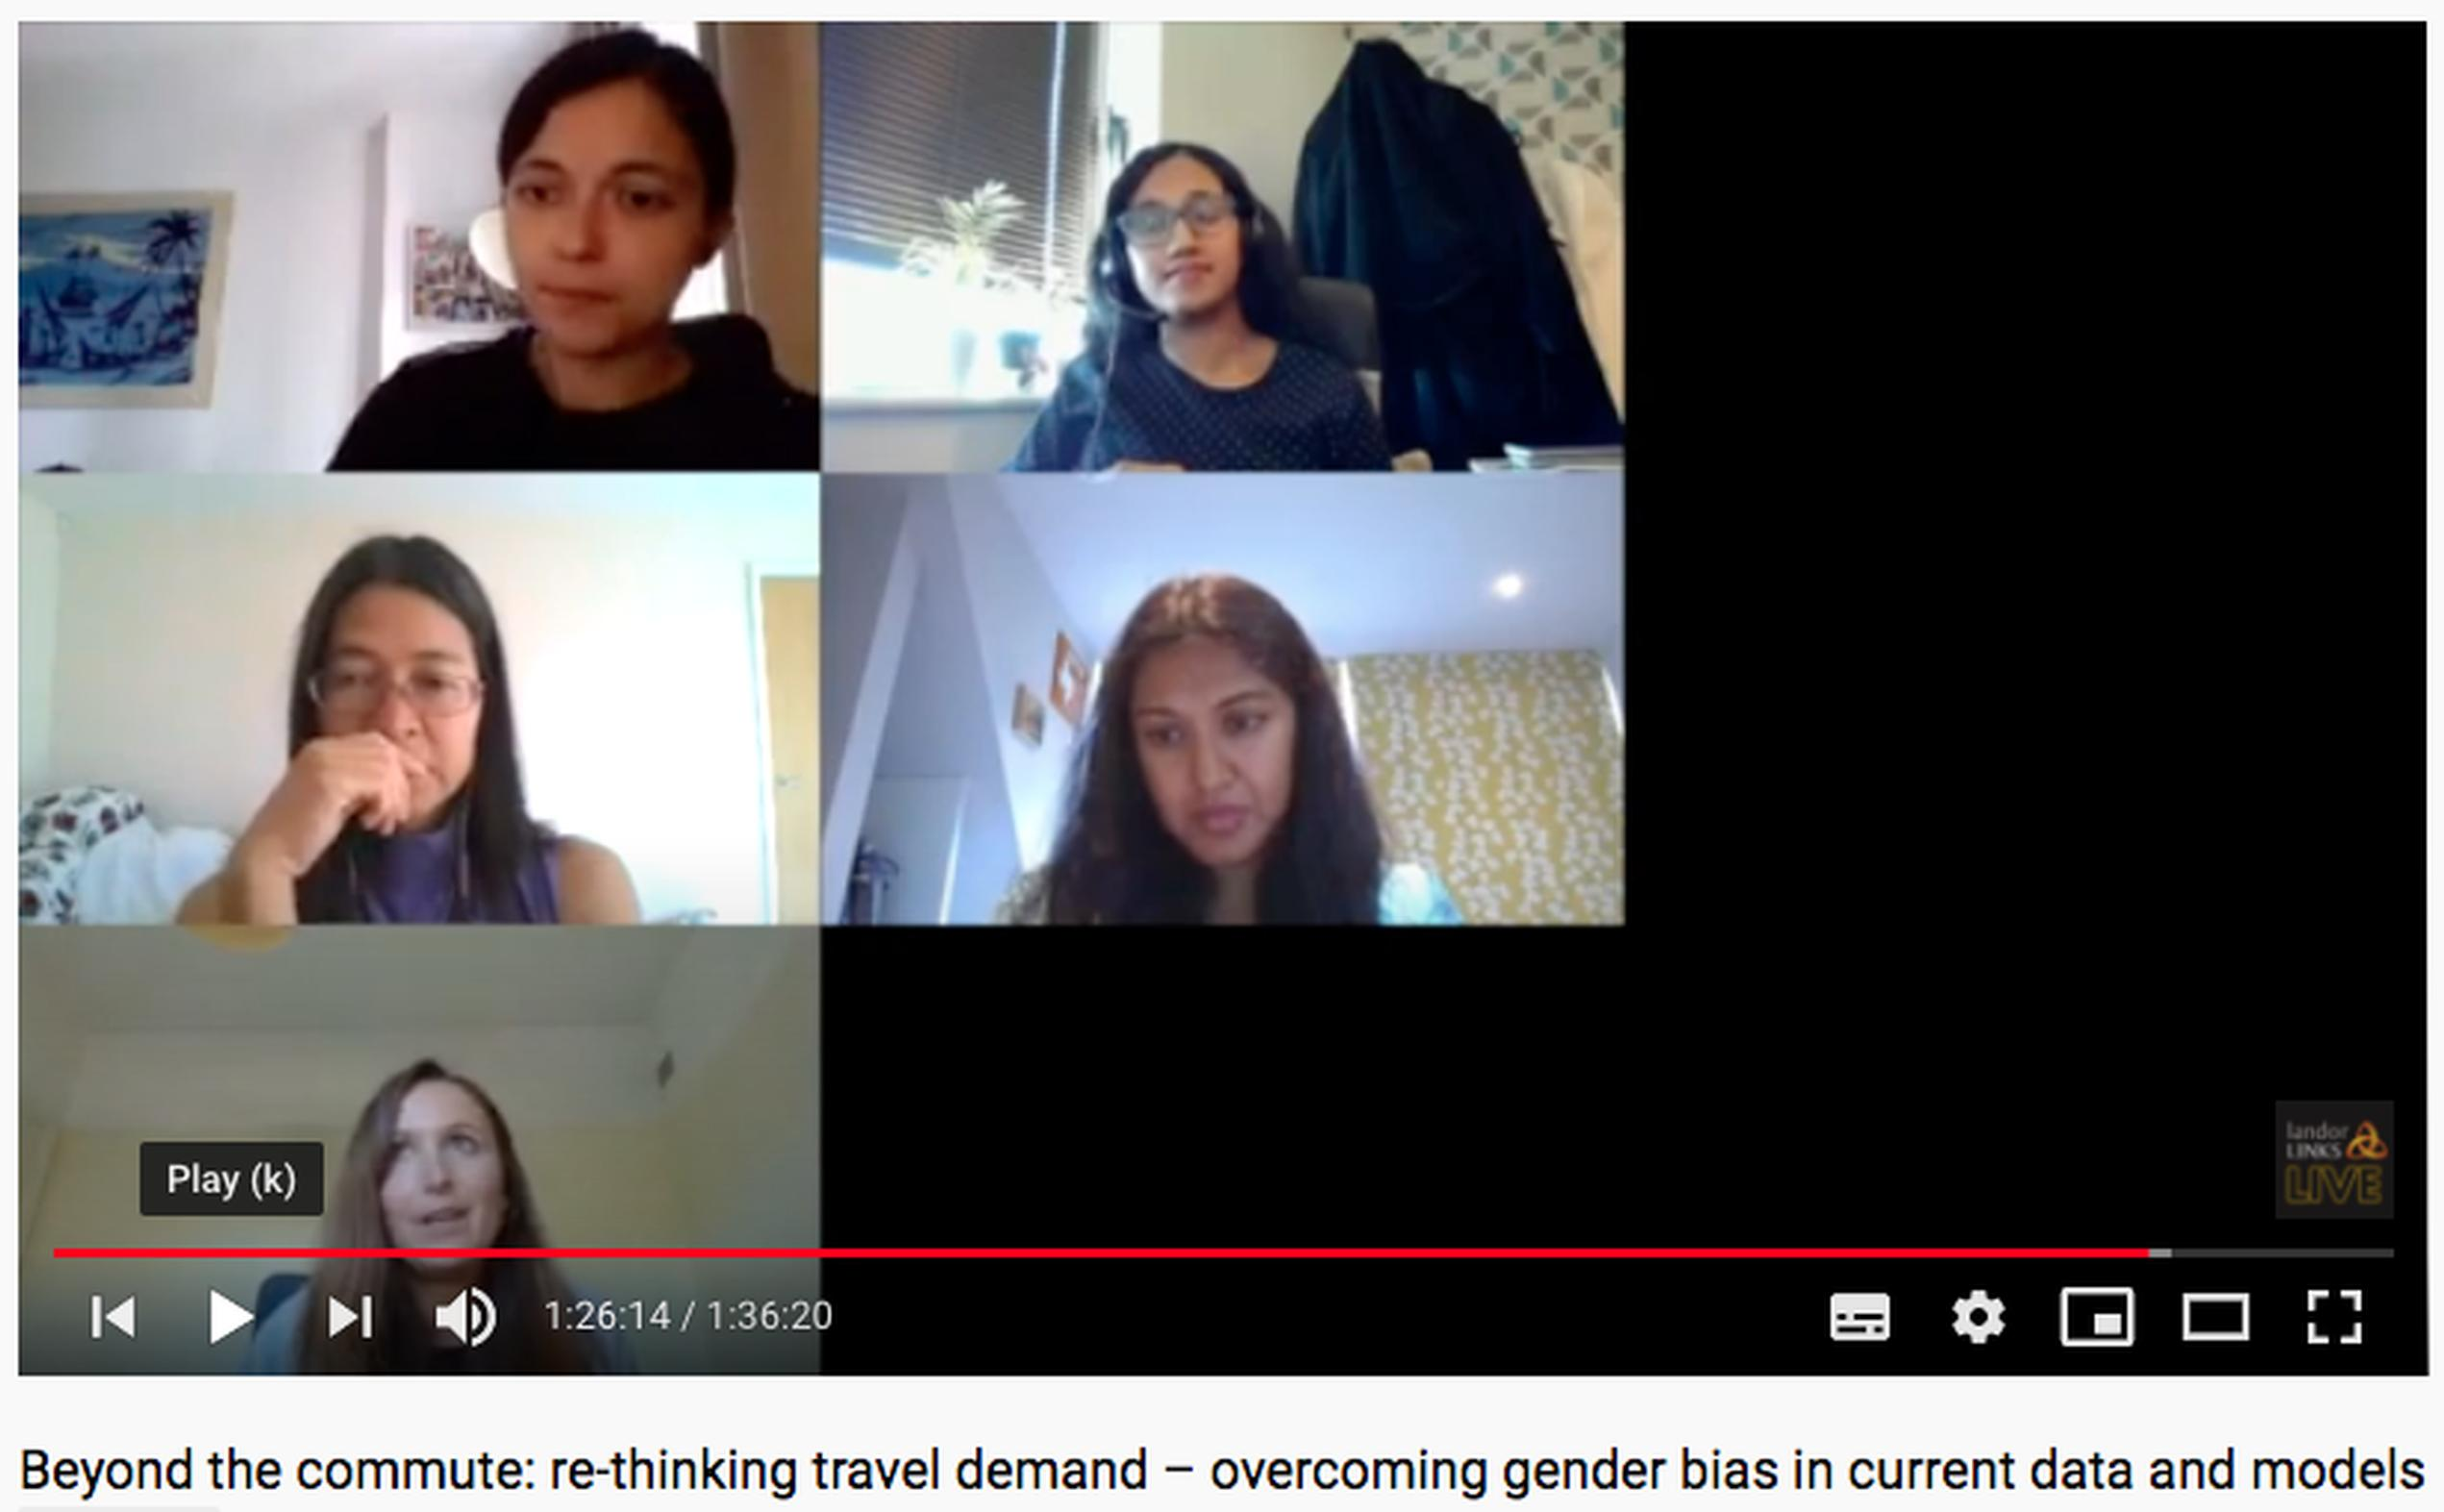 Virtual plenary at MW – Beyond the commute: re-thinking travel demand – overcoming gender bias in current data and models